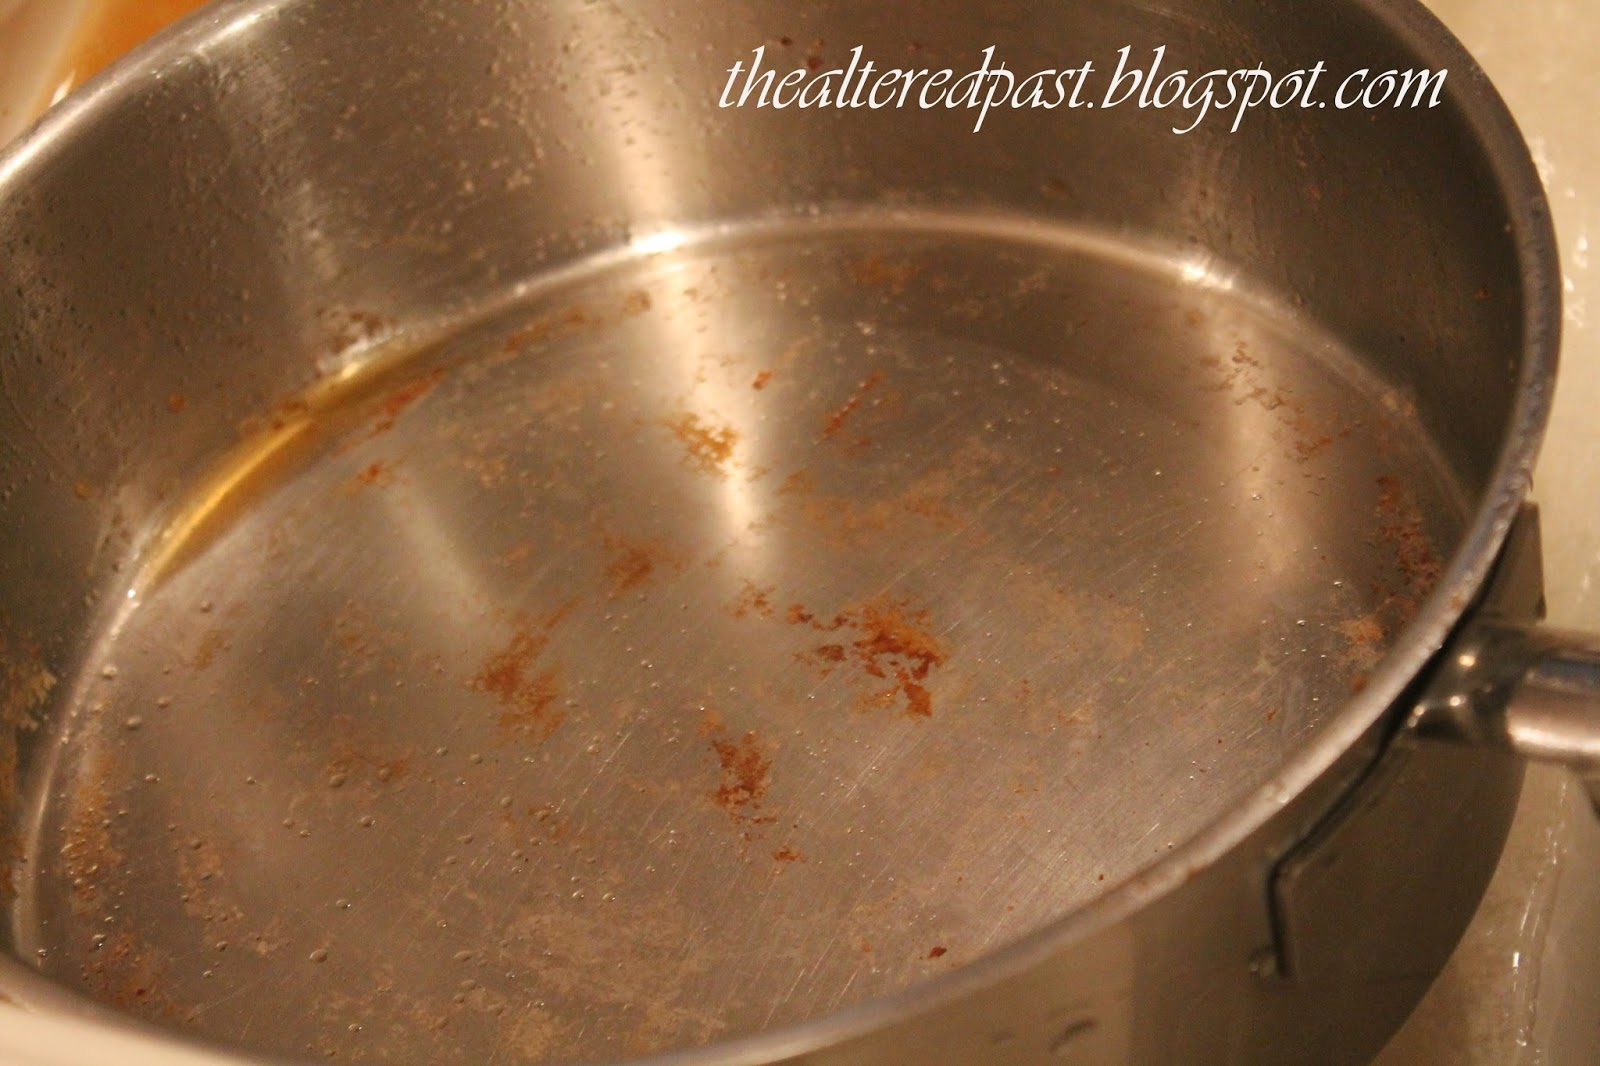 easy cleaning tip for baked on food, the altered past blog